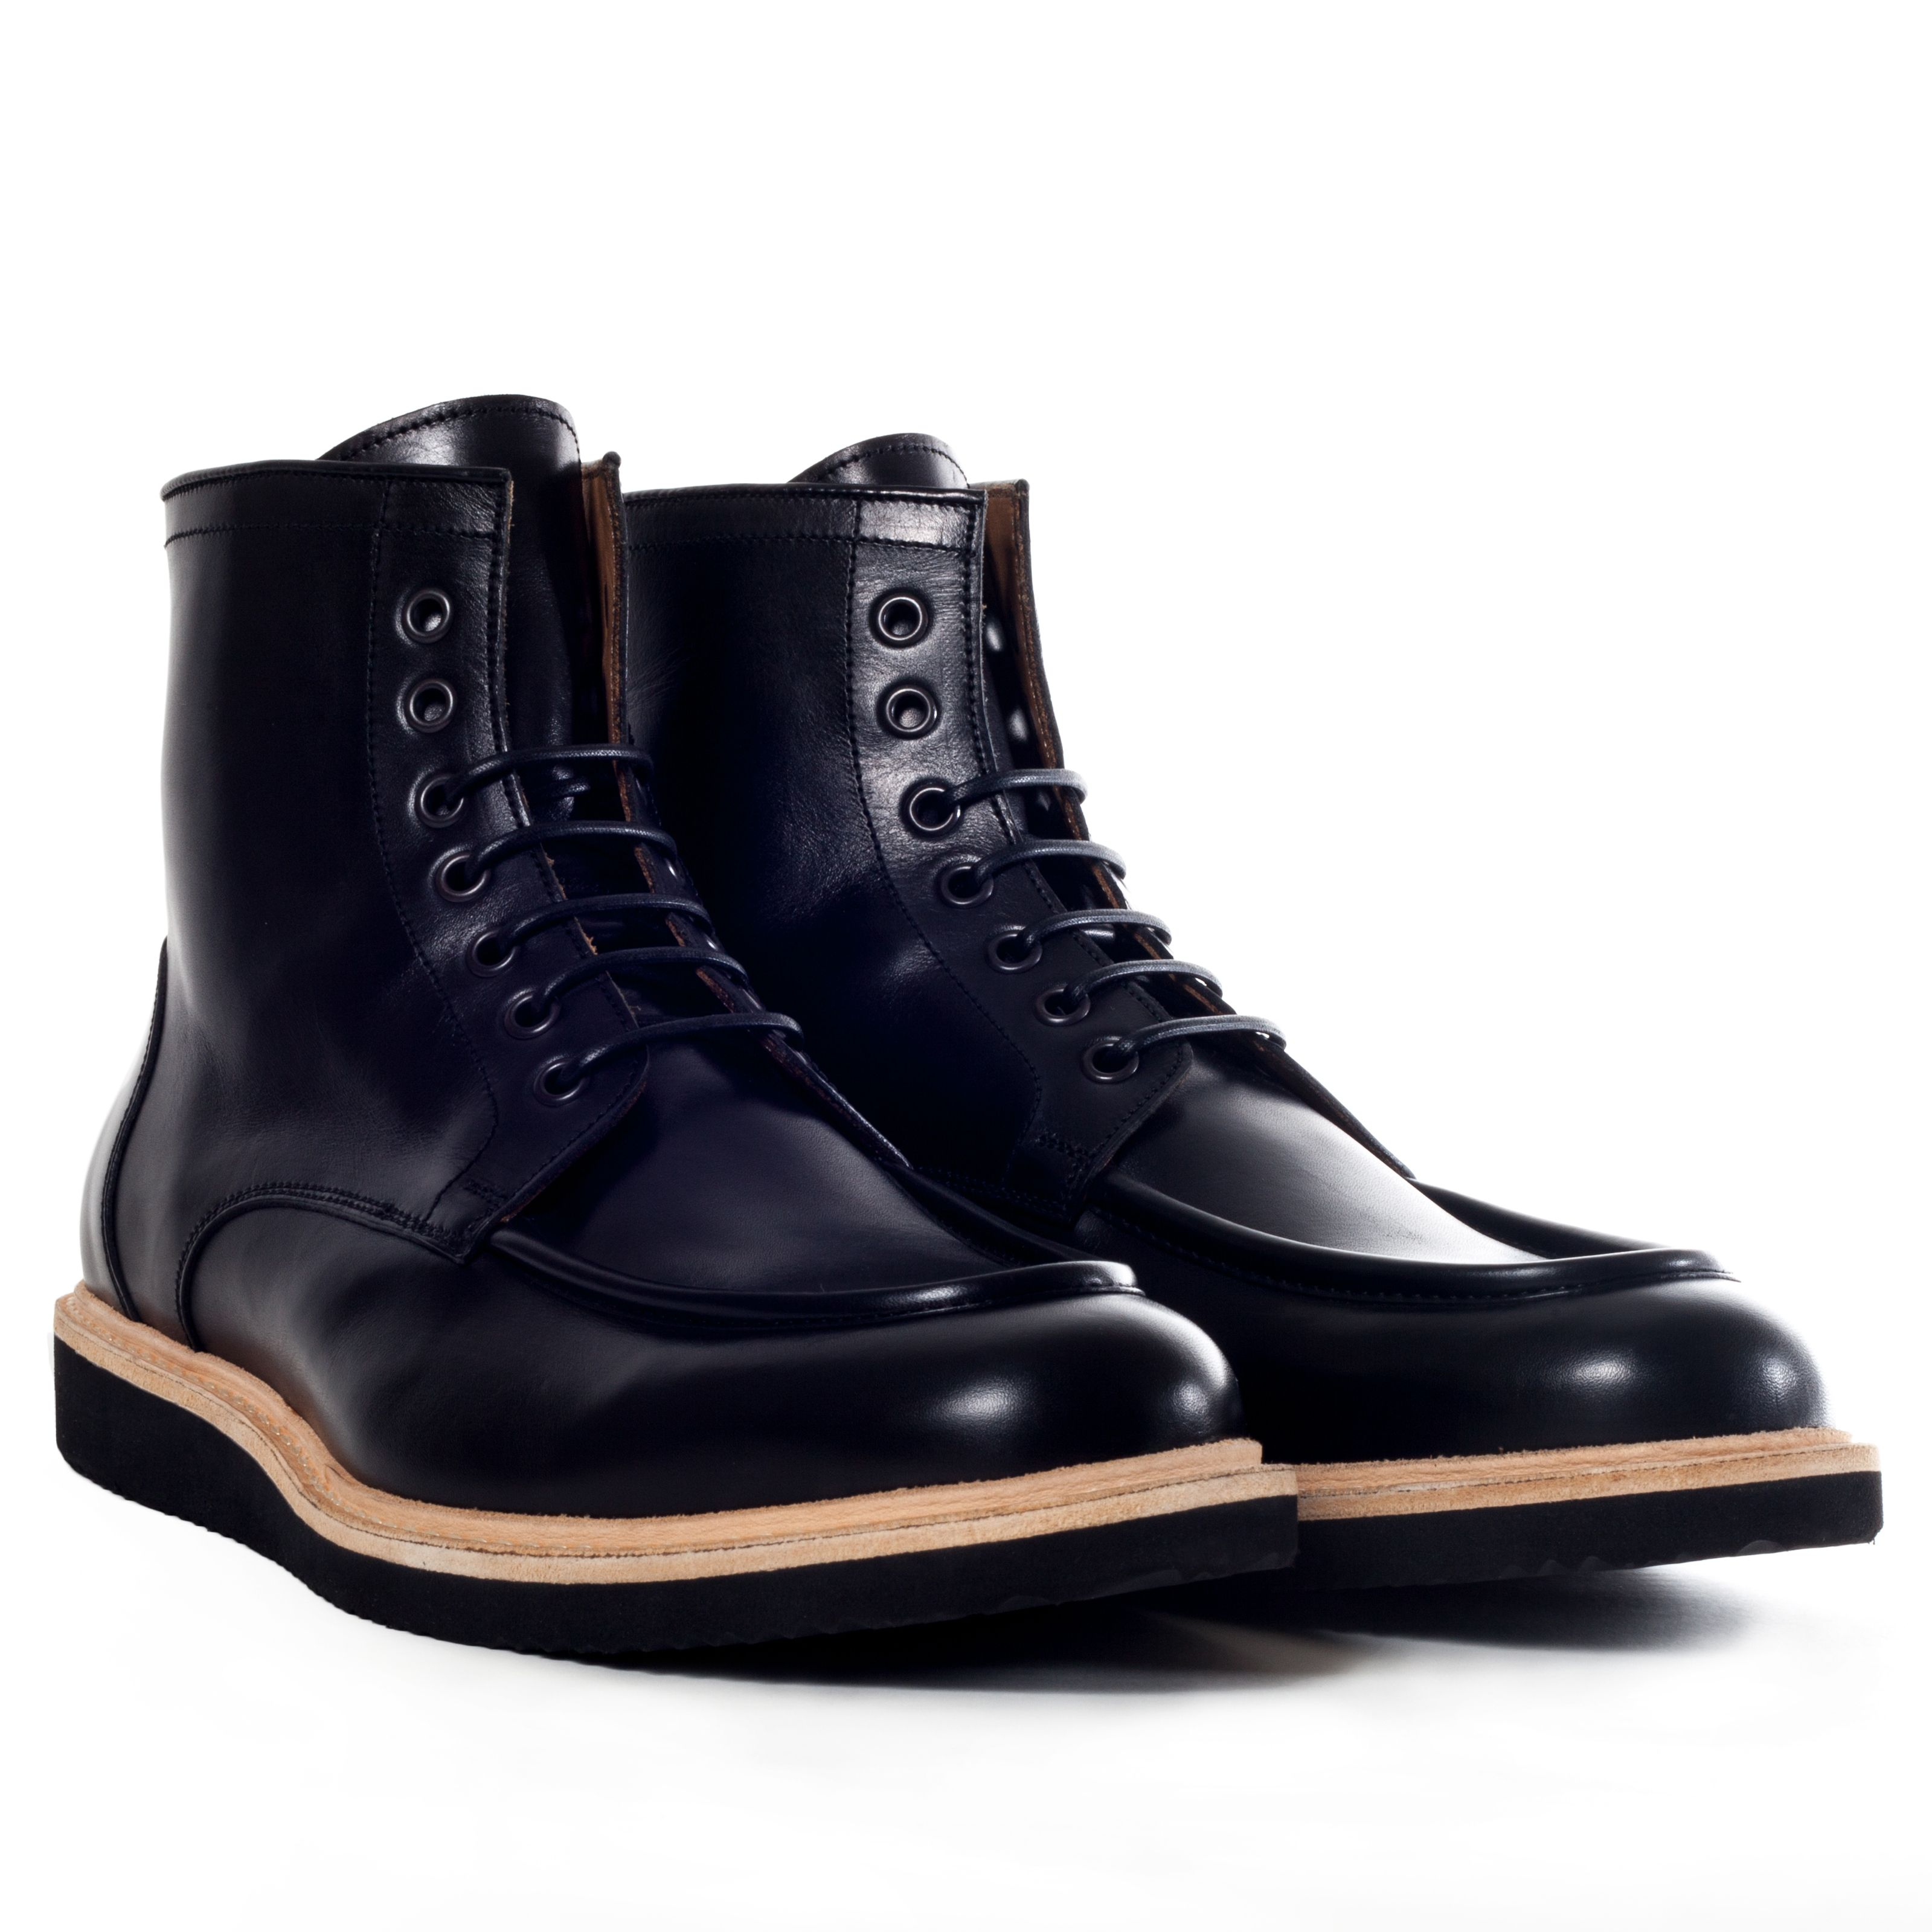 WORK BOOTS WITH LIGHT WEIGHT WEDGE SOLE